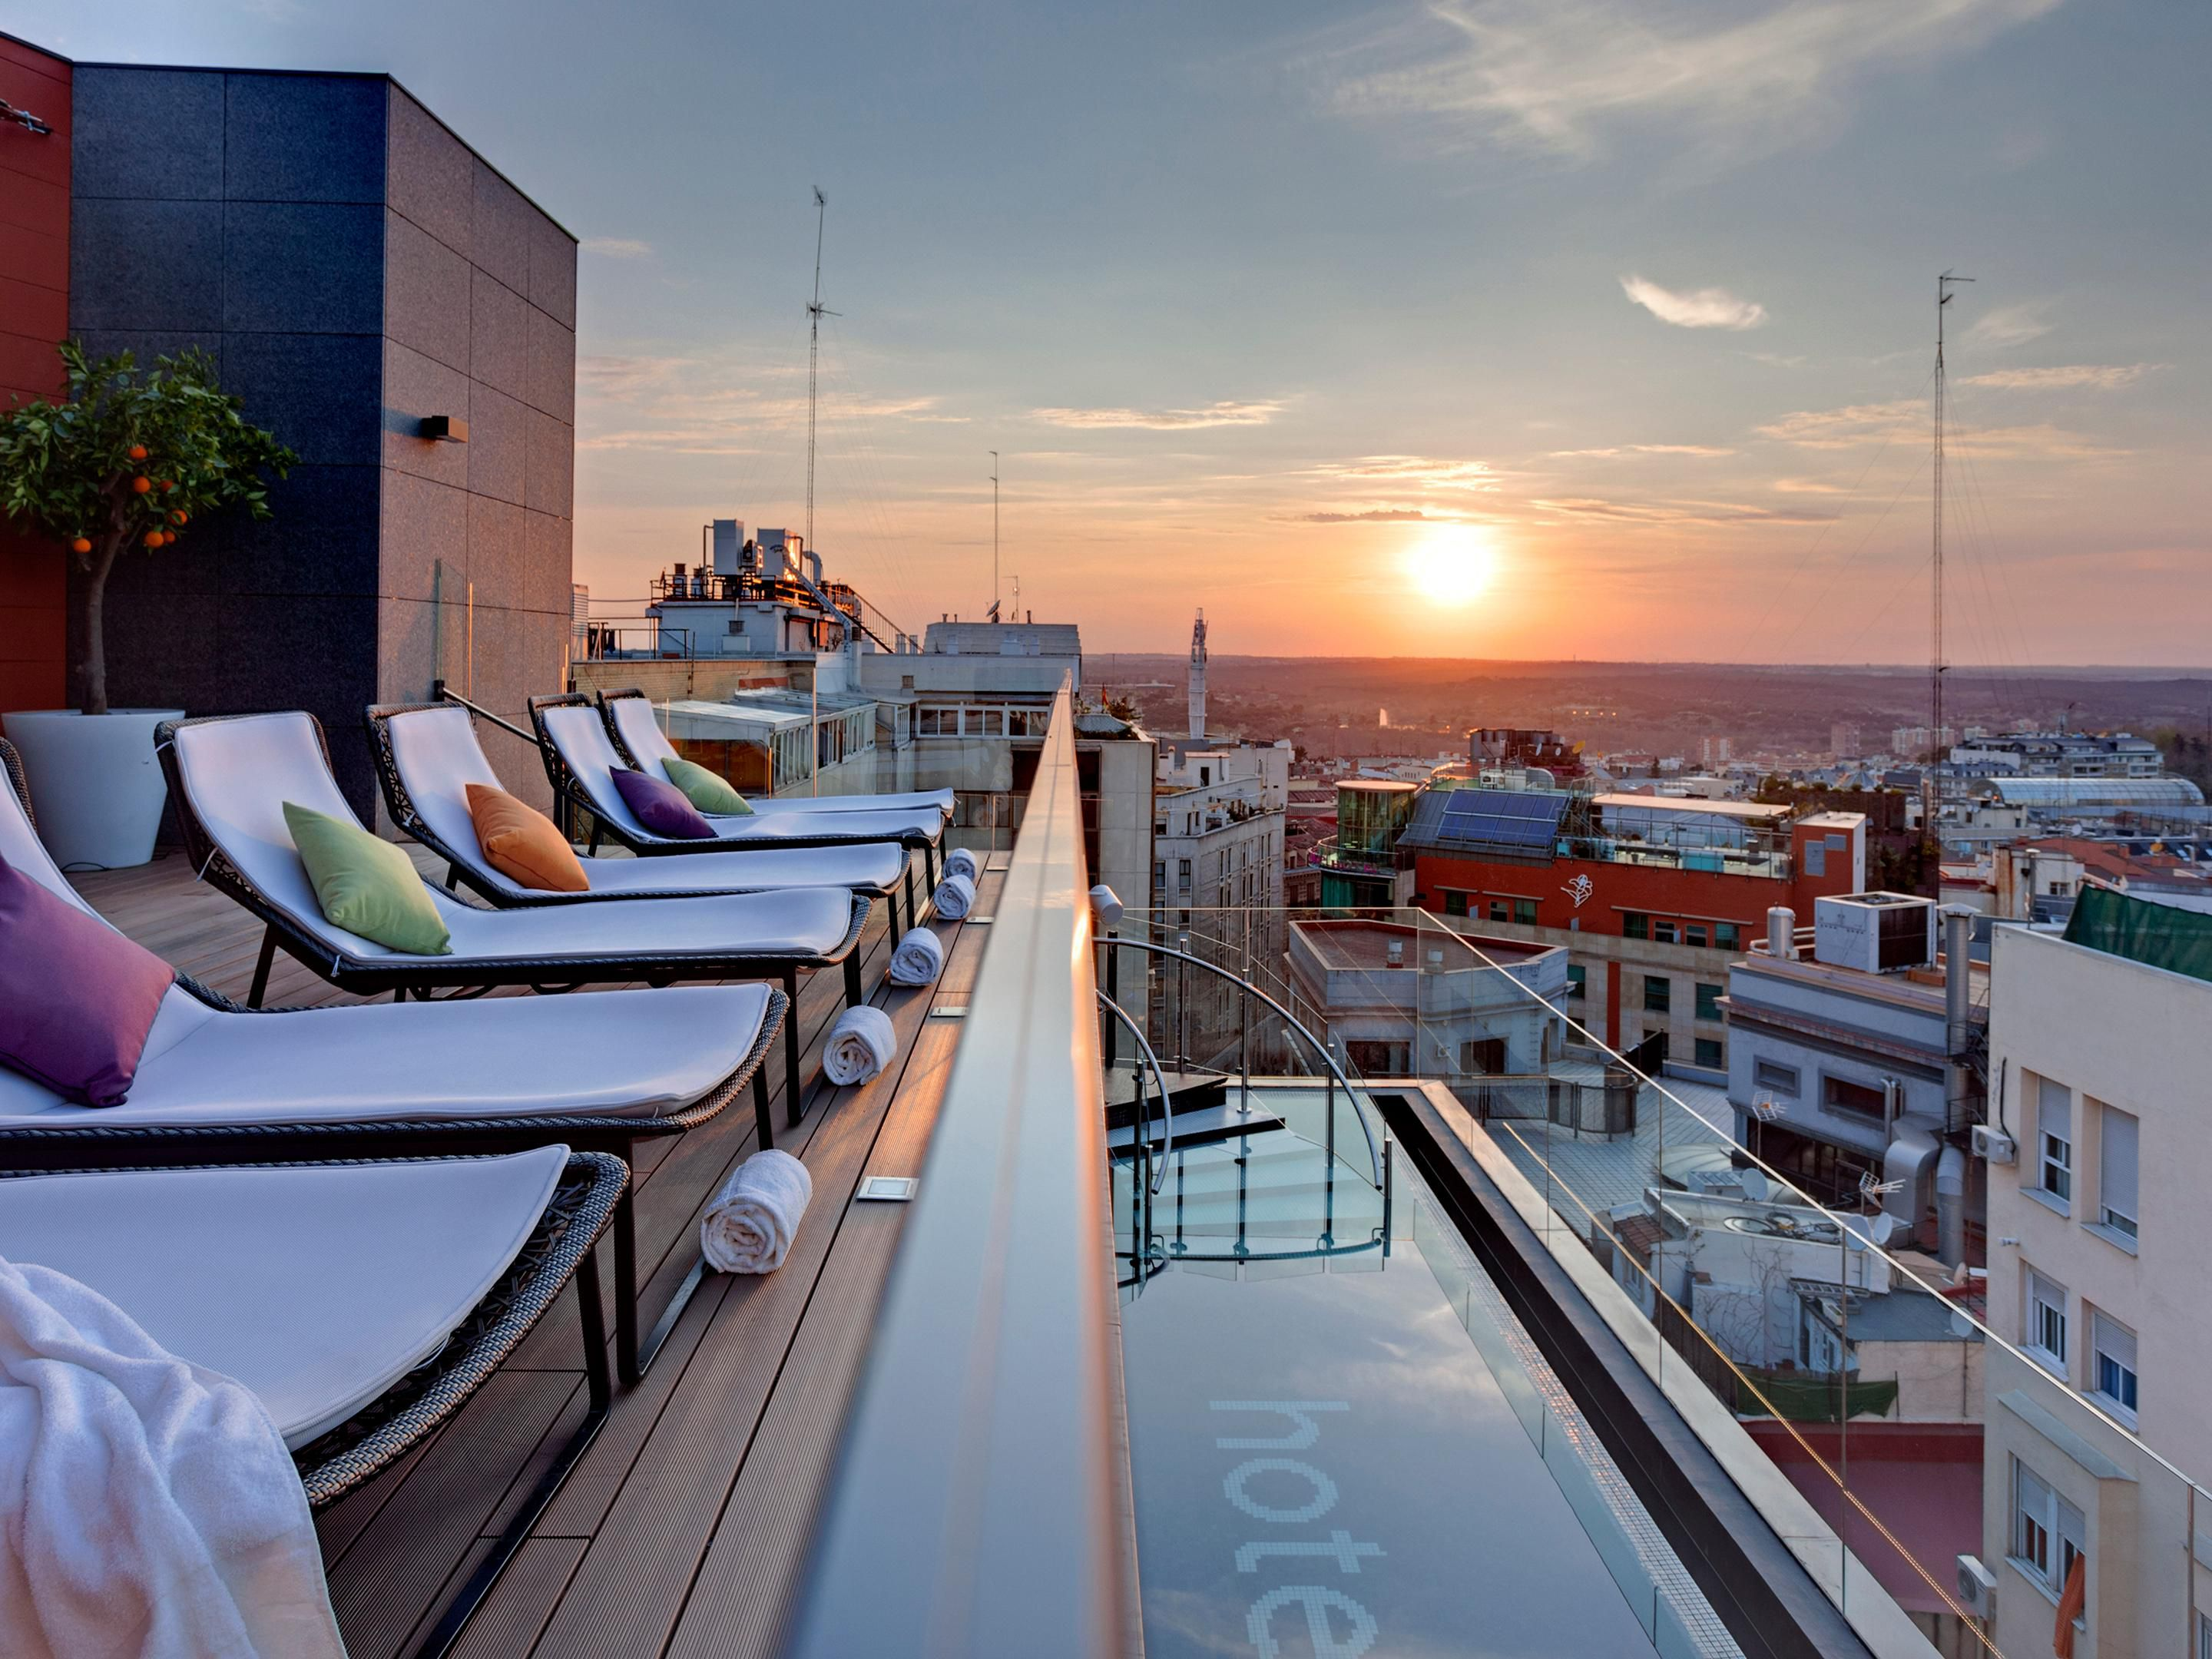 La Mejor Piscina De Madrid Find Madrid Hotels Top 13 Hotels In Madrid Spain By Ihg